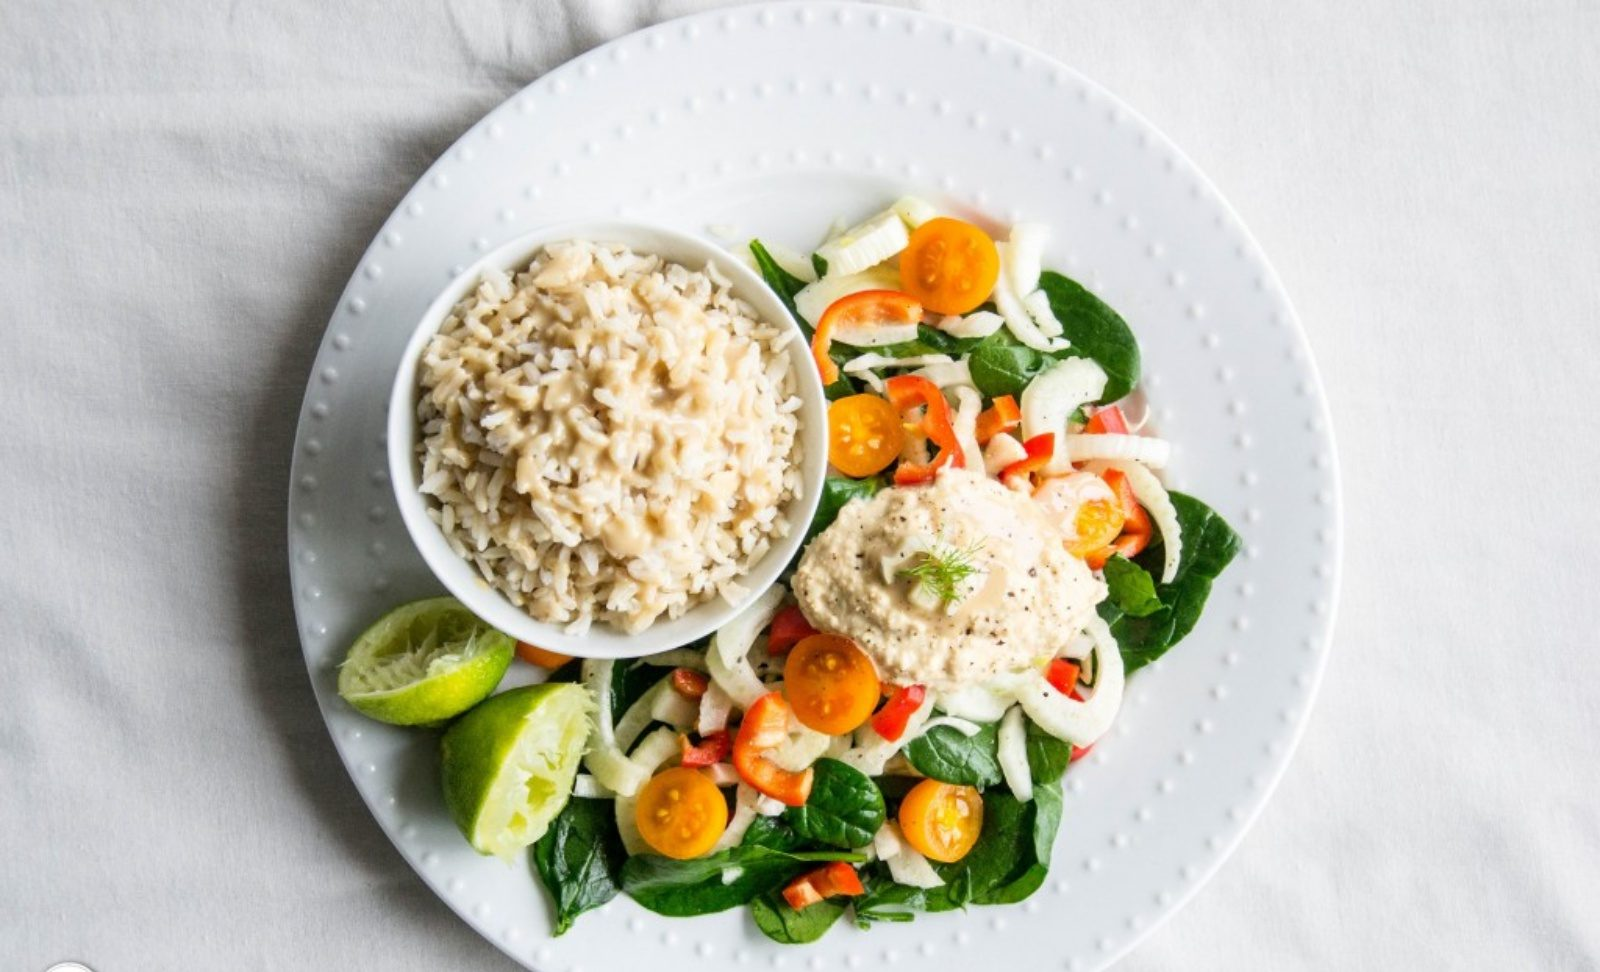 fennel and brown rice salad